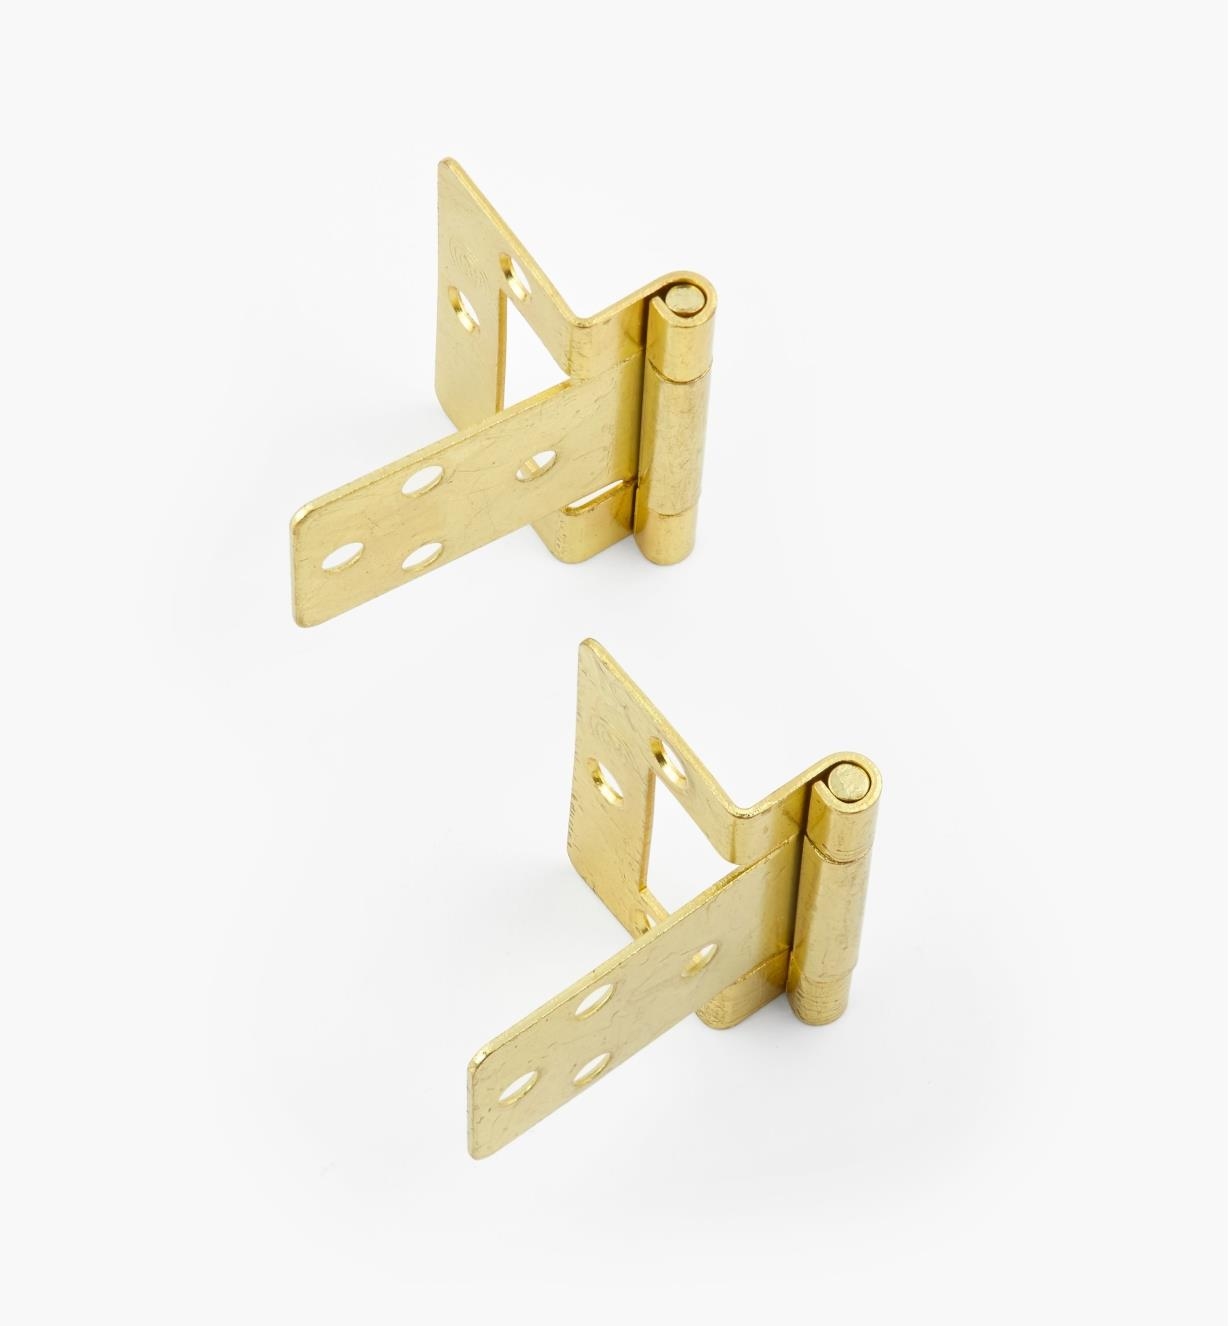 "00H5802 - 3/8"" Brass Plate Hinges, pair"